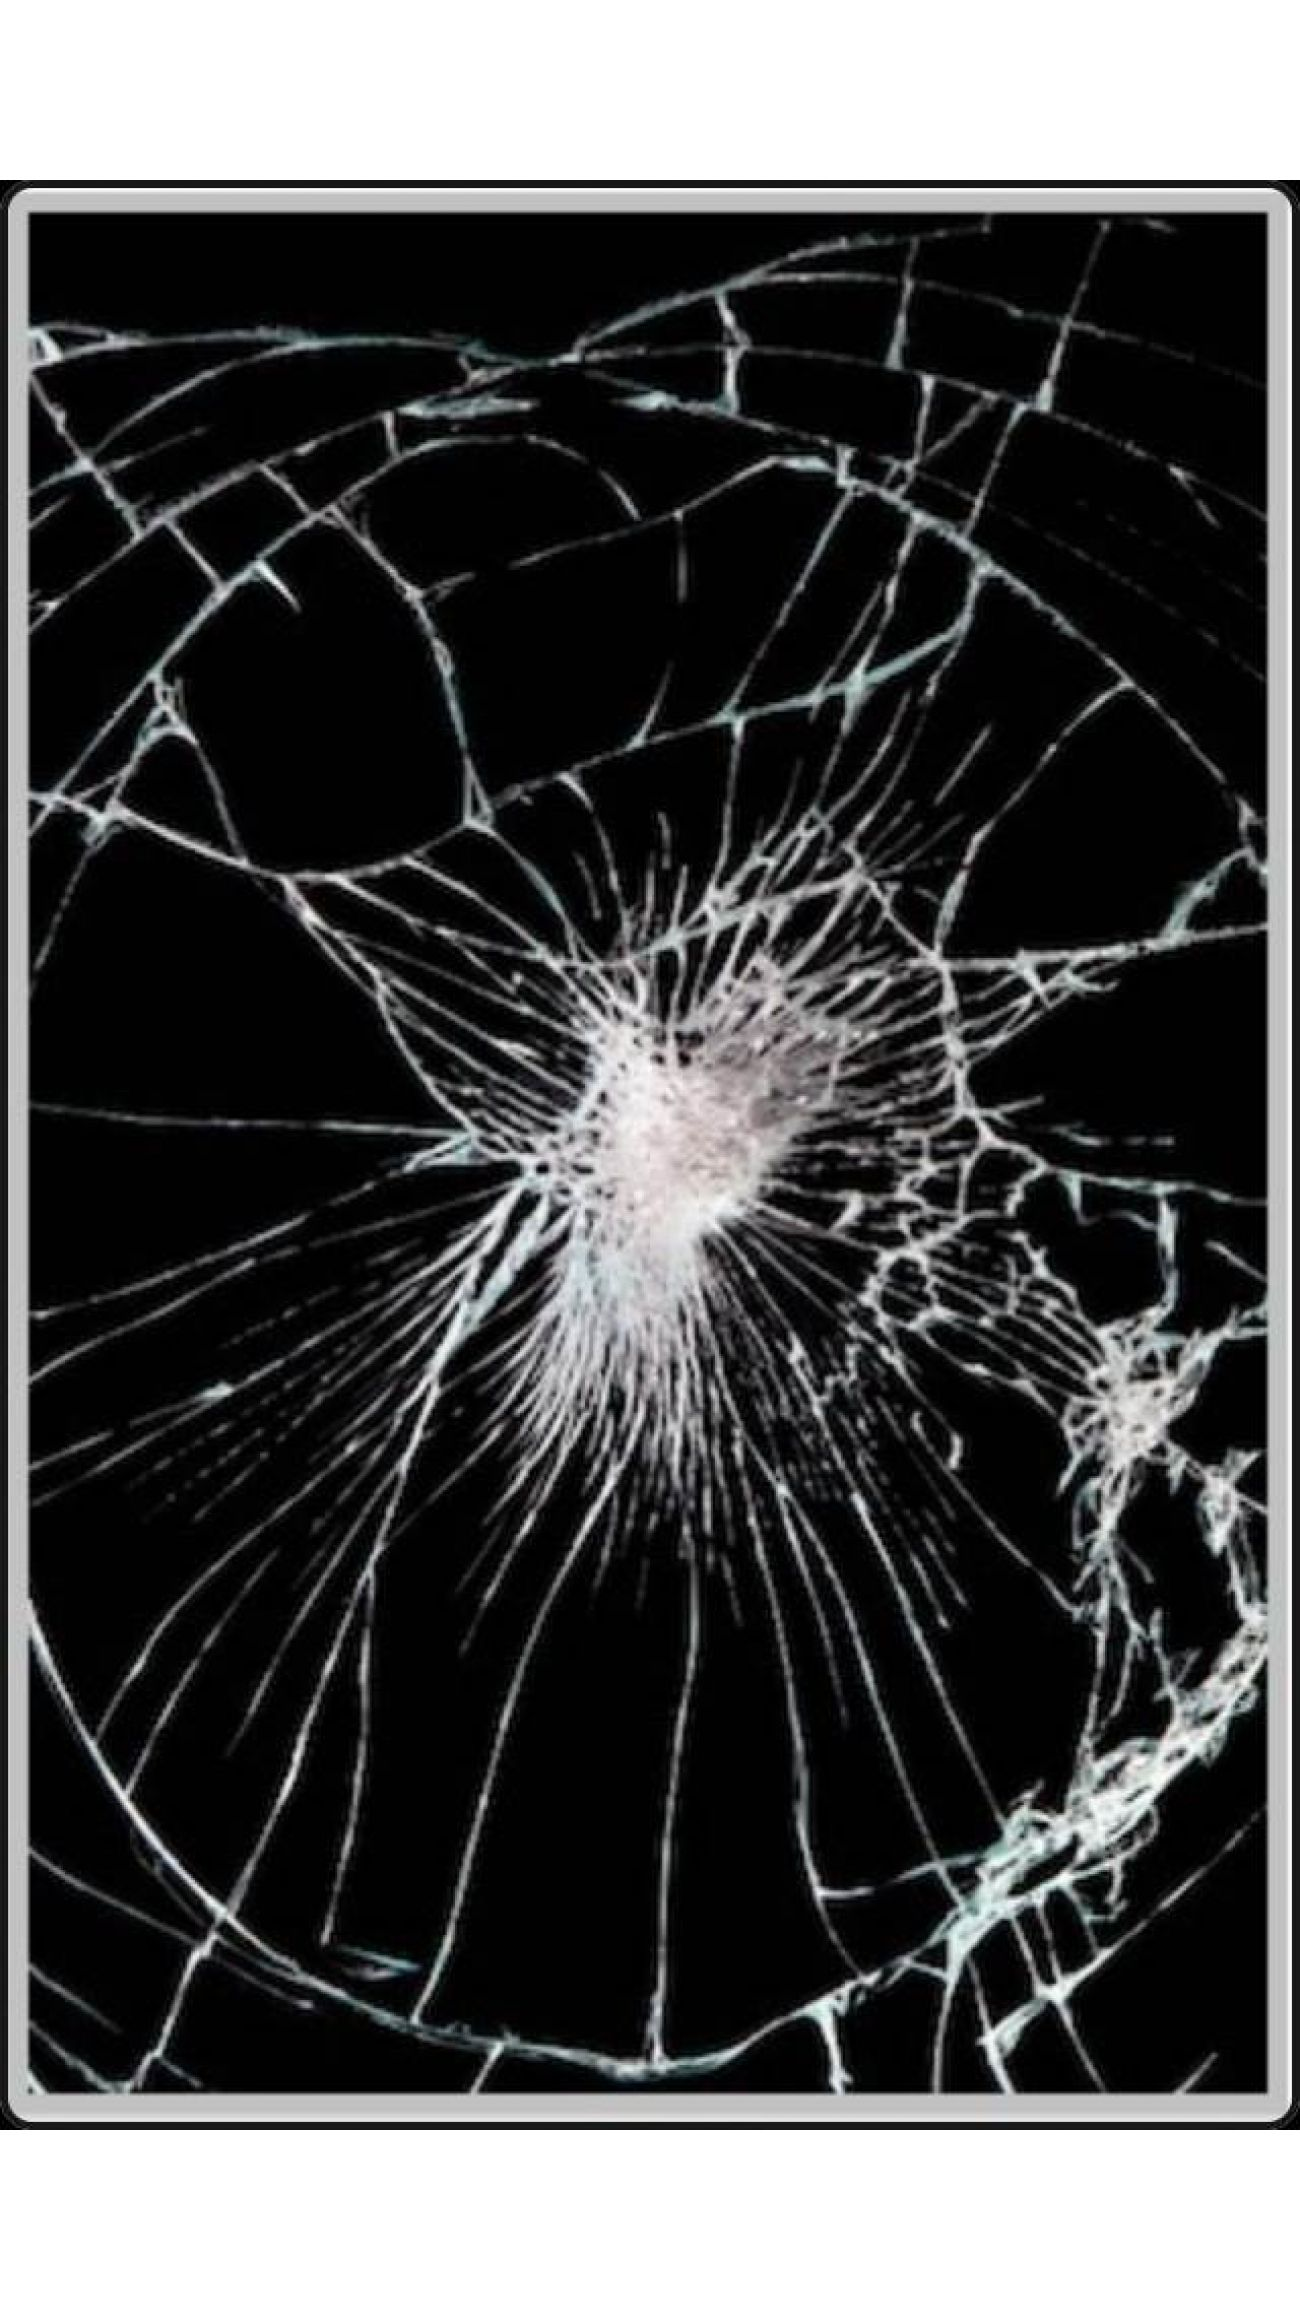 download broken screen wallpaper apps android high quality hd